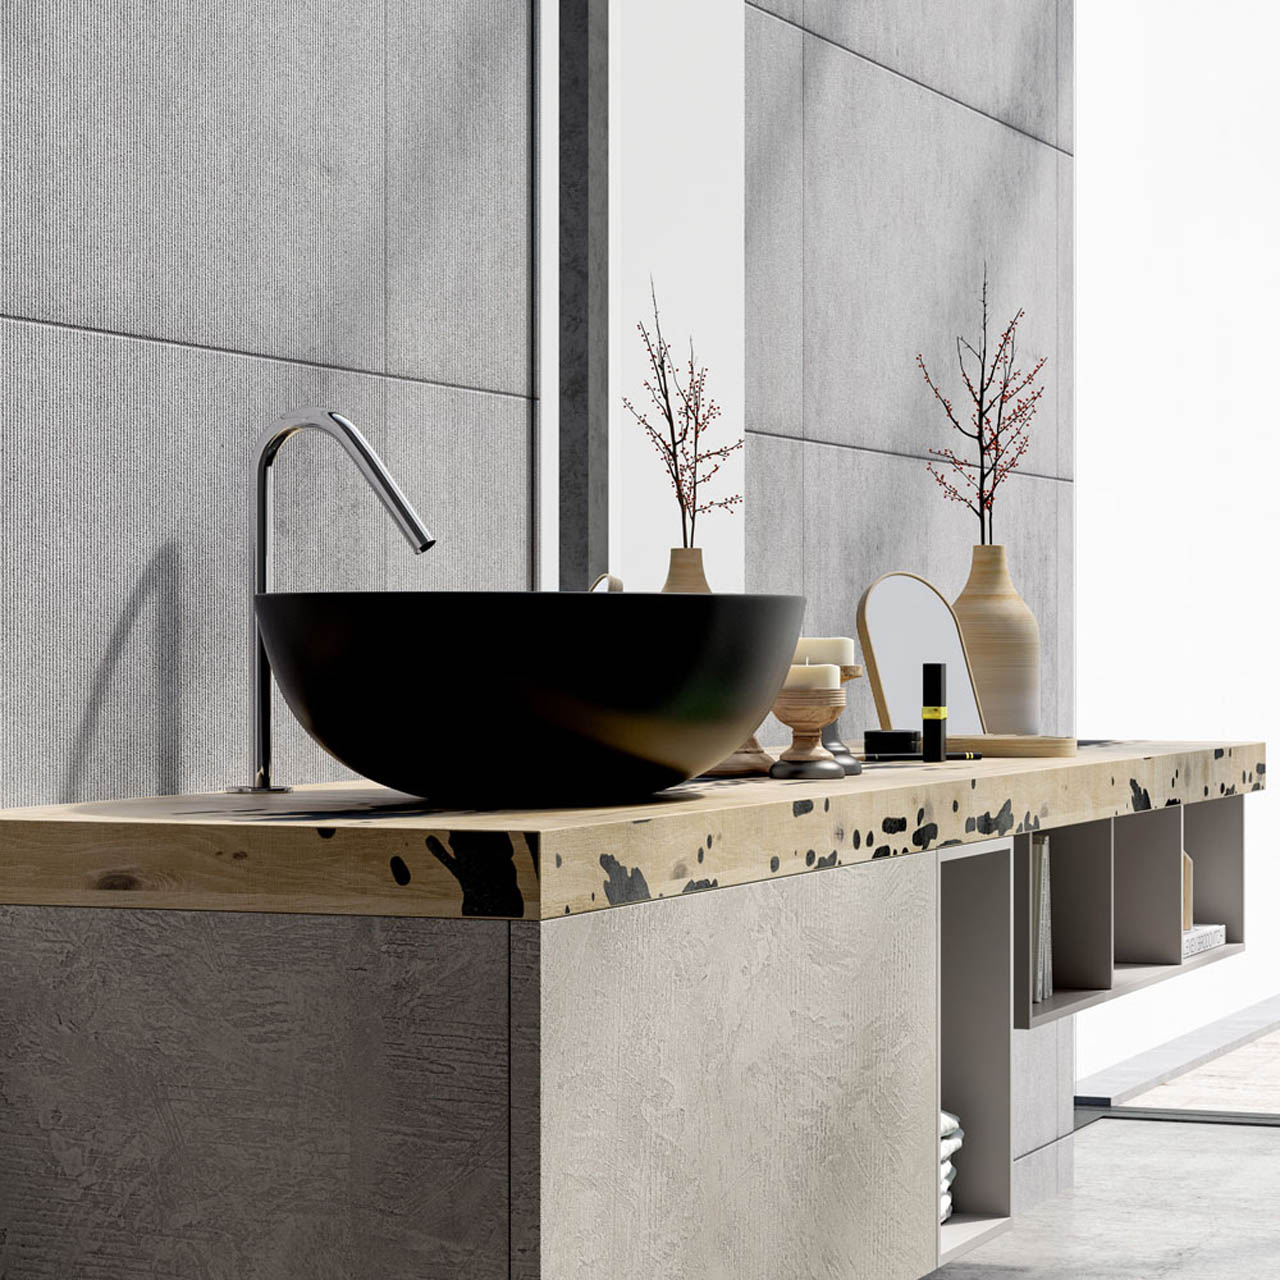 bagno-time-5-4-1